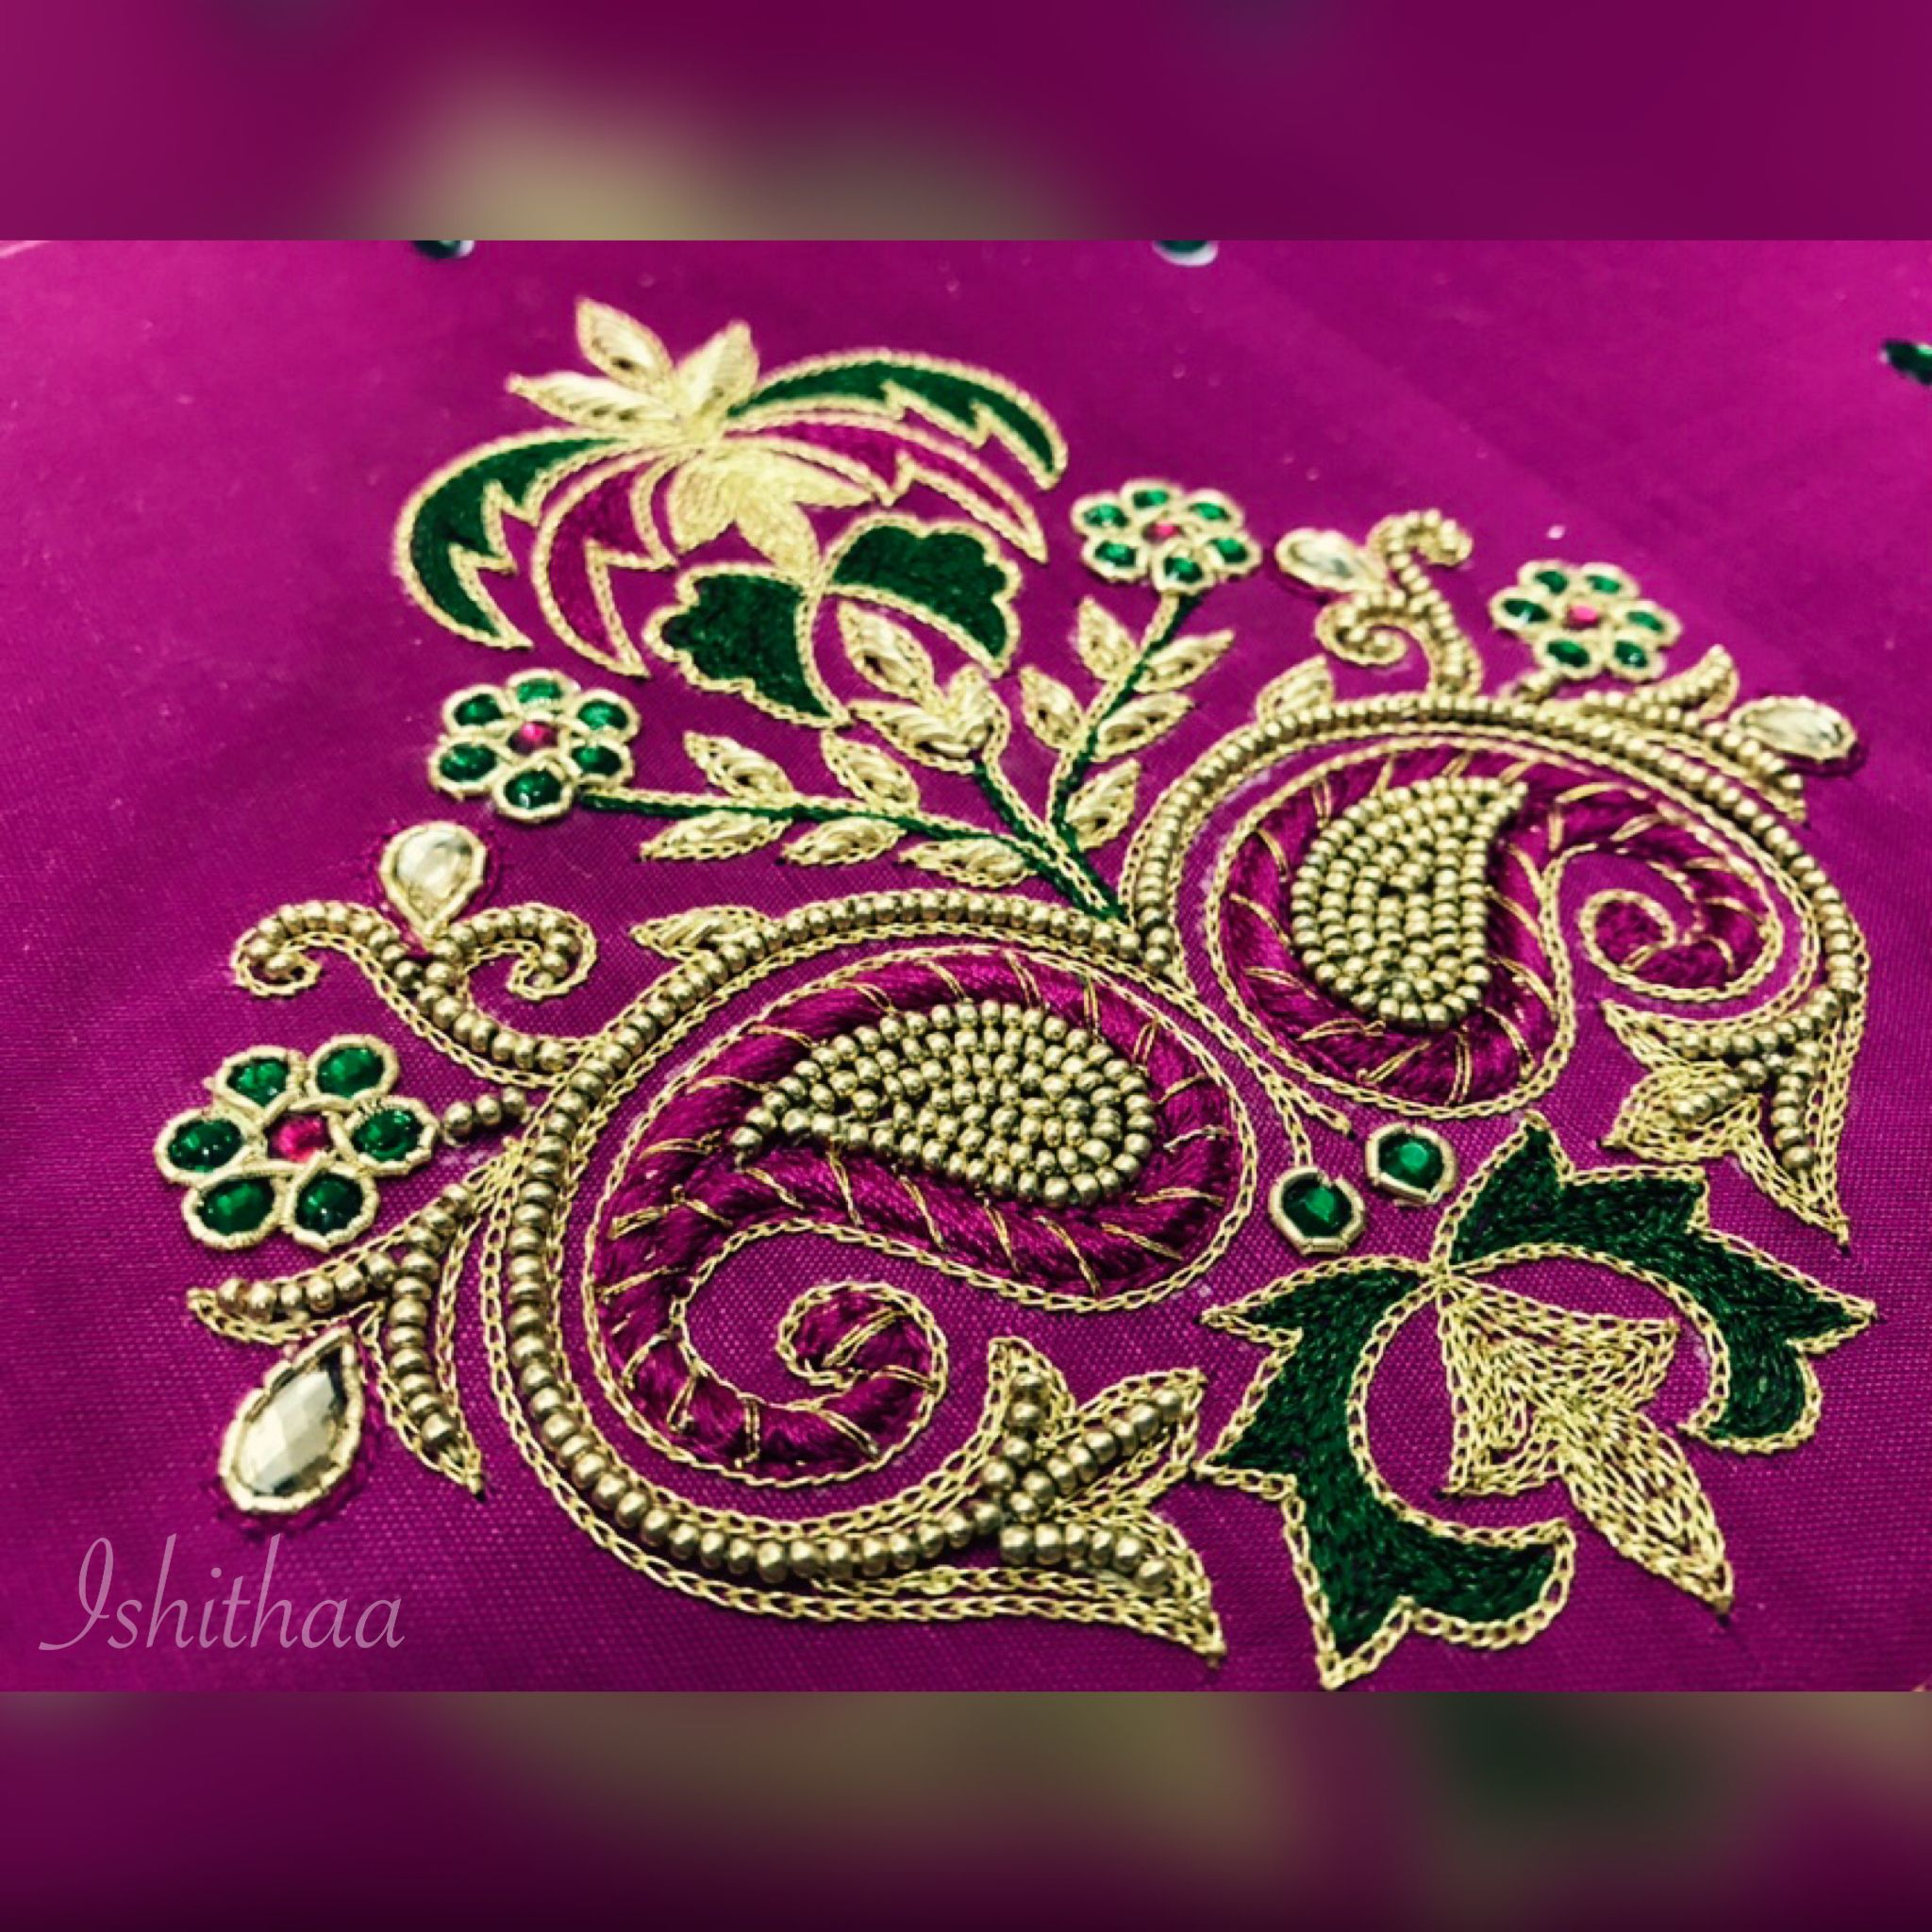 Pin by deepika reddy on ishithaa design house pinterest blouse embroidery art embroidery stitches embroidery designs blouse patterns blouse designs saree blouse work blouse goldwork hair accessories bankloansurffo Images